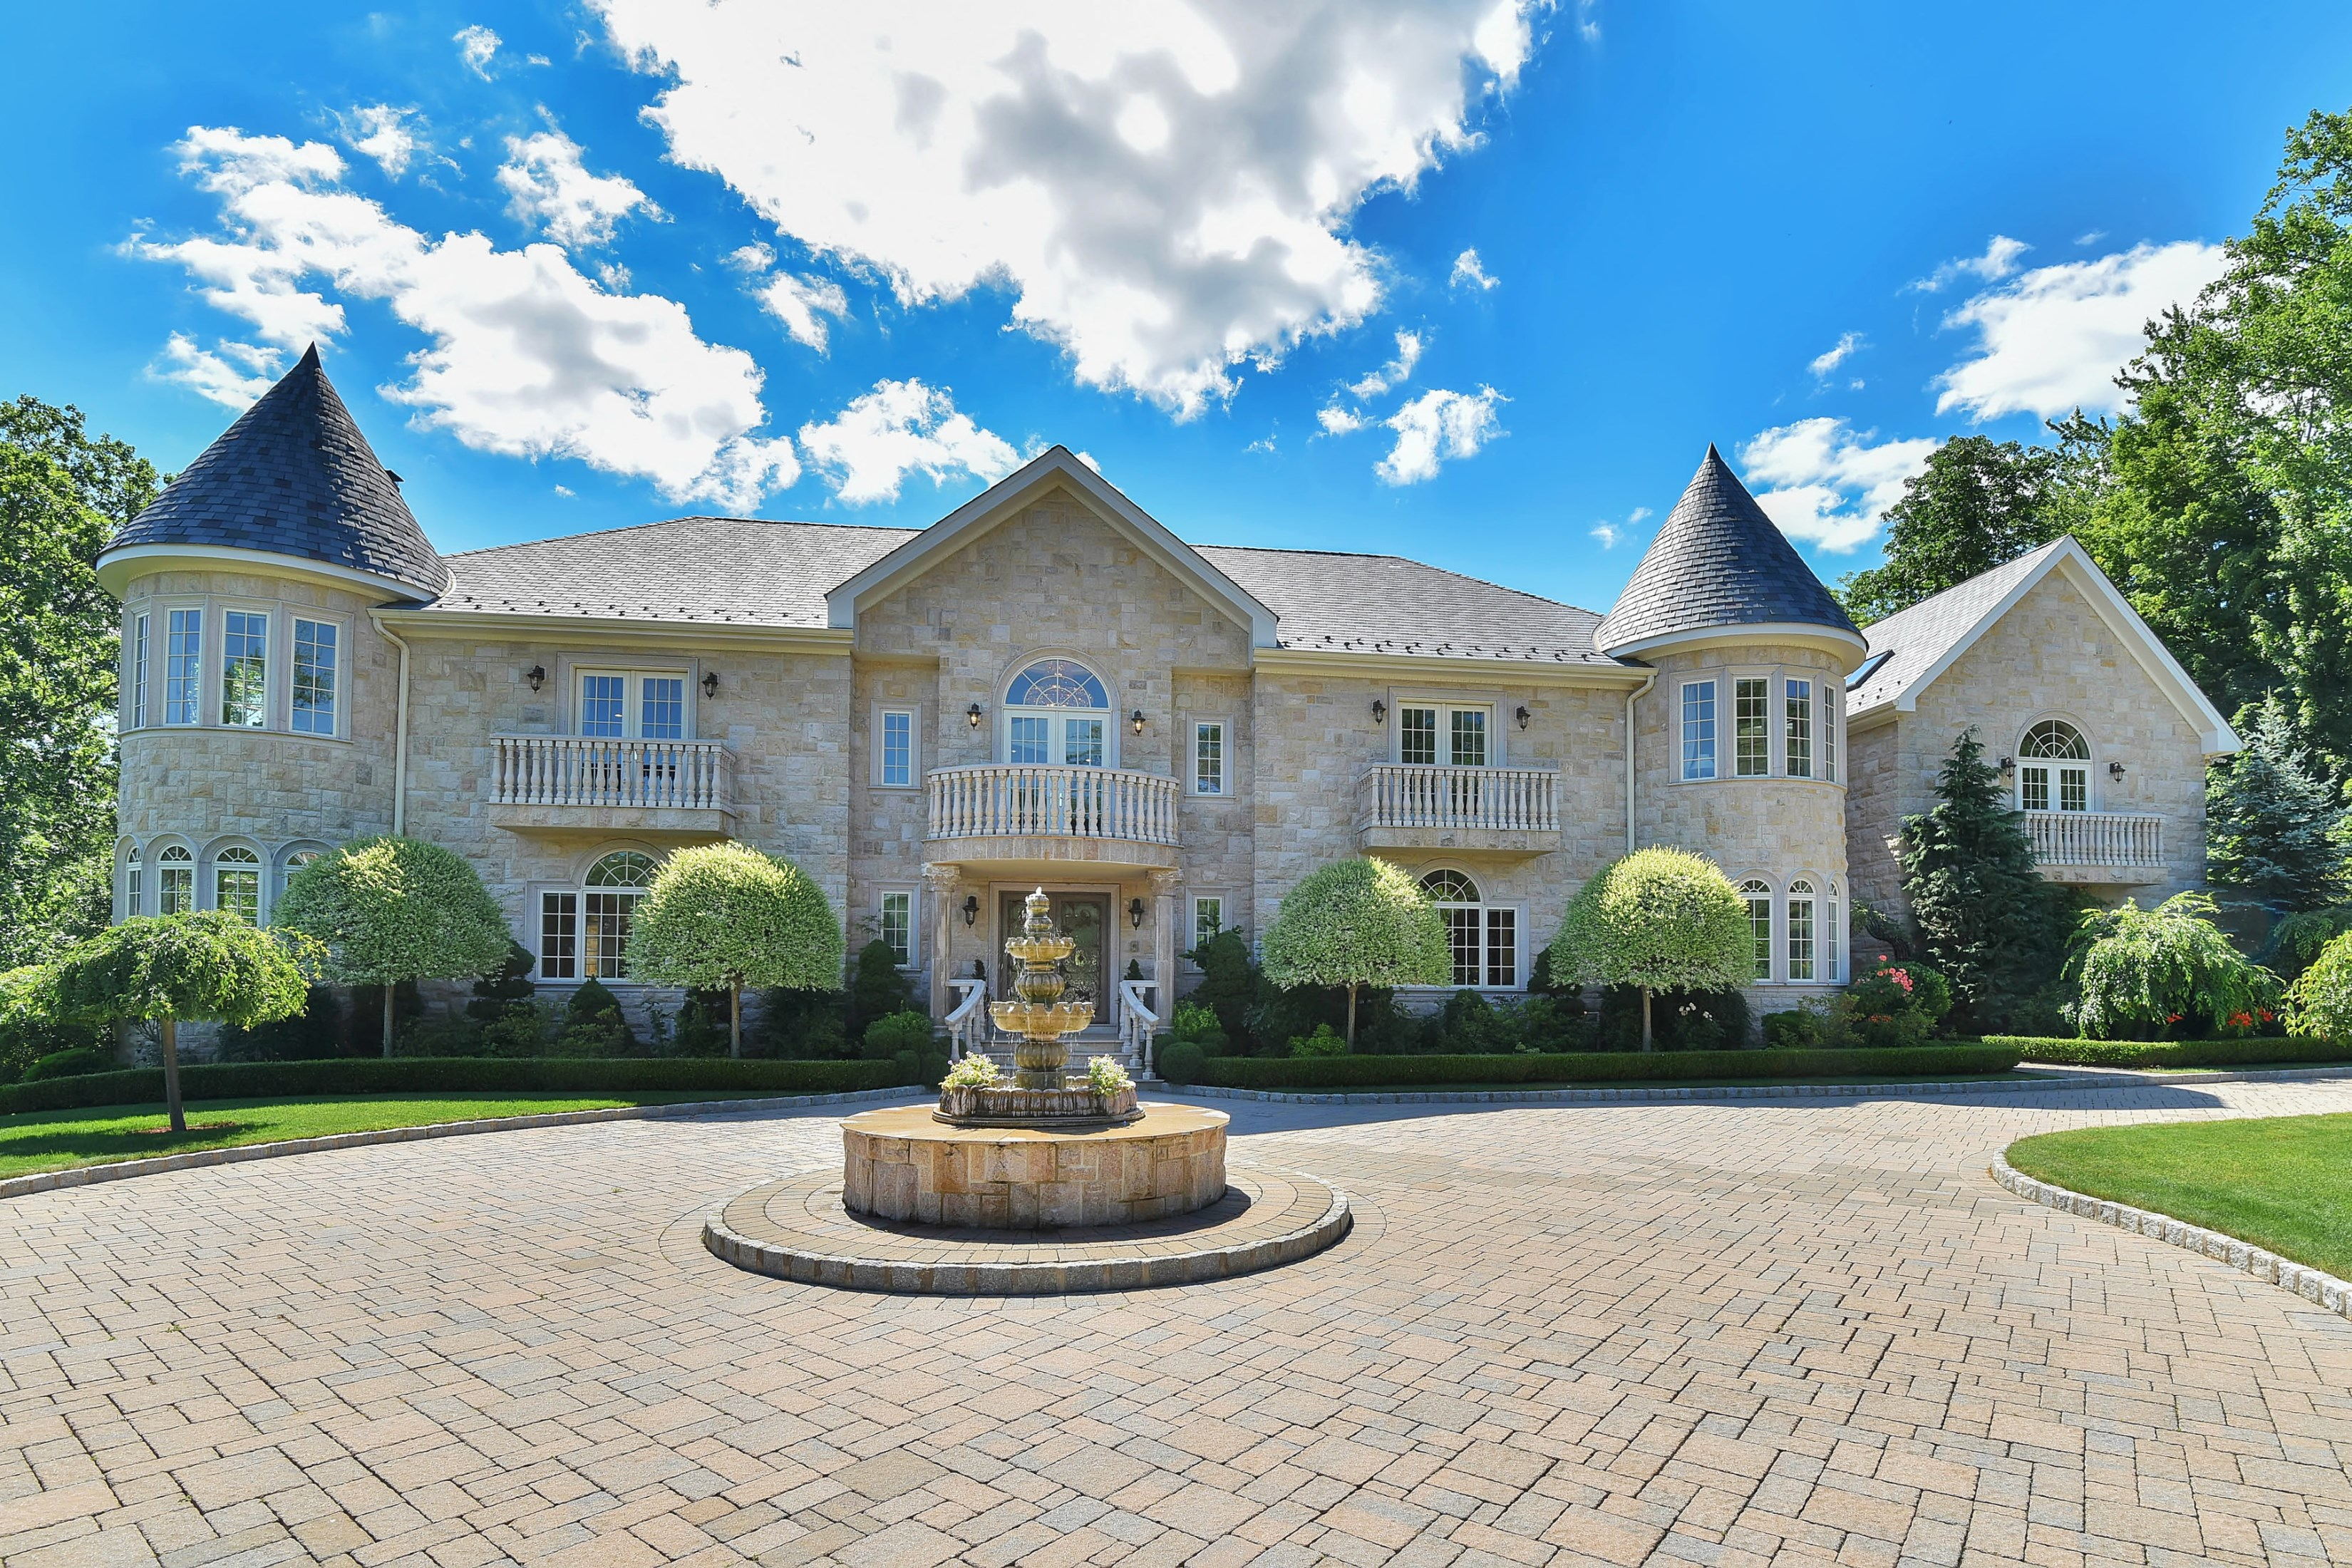 Single Family Home for Sale at Crown Jewel of Rio Vista 33 Brams Hill Drive Mahwah, New Jersey 07430 United States